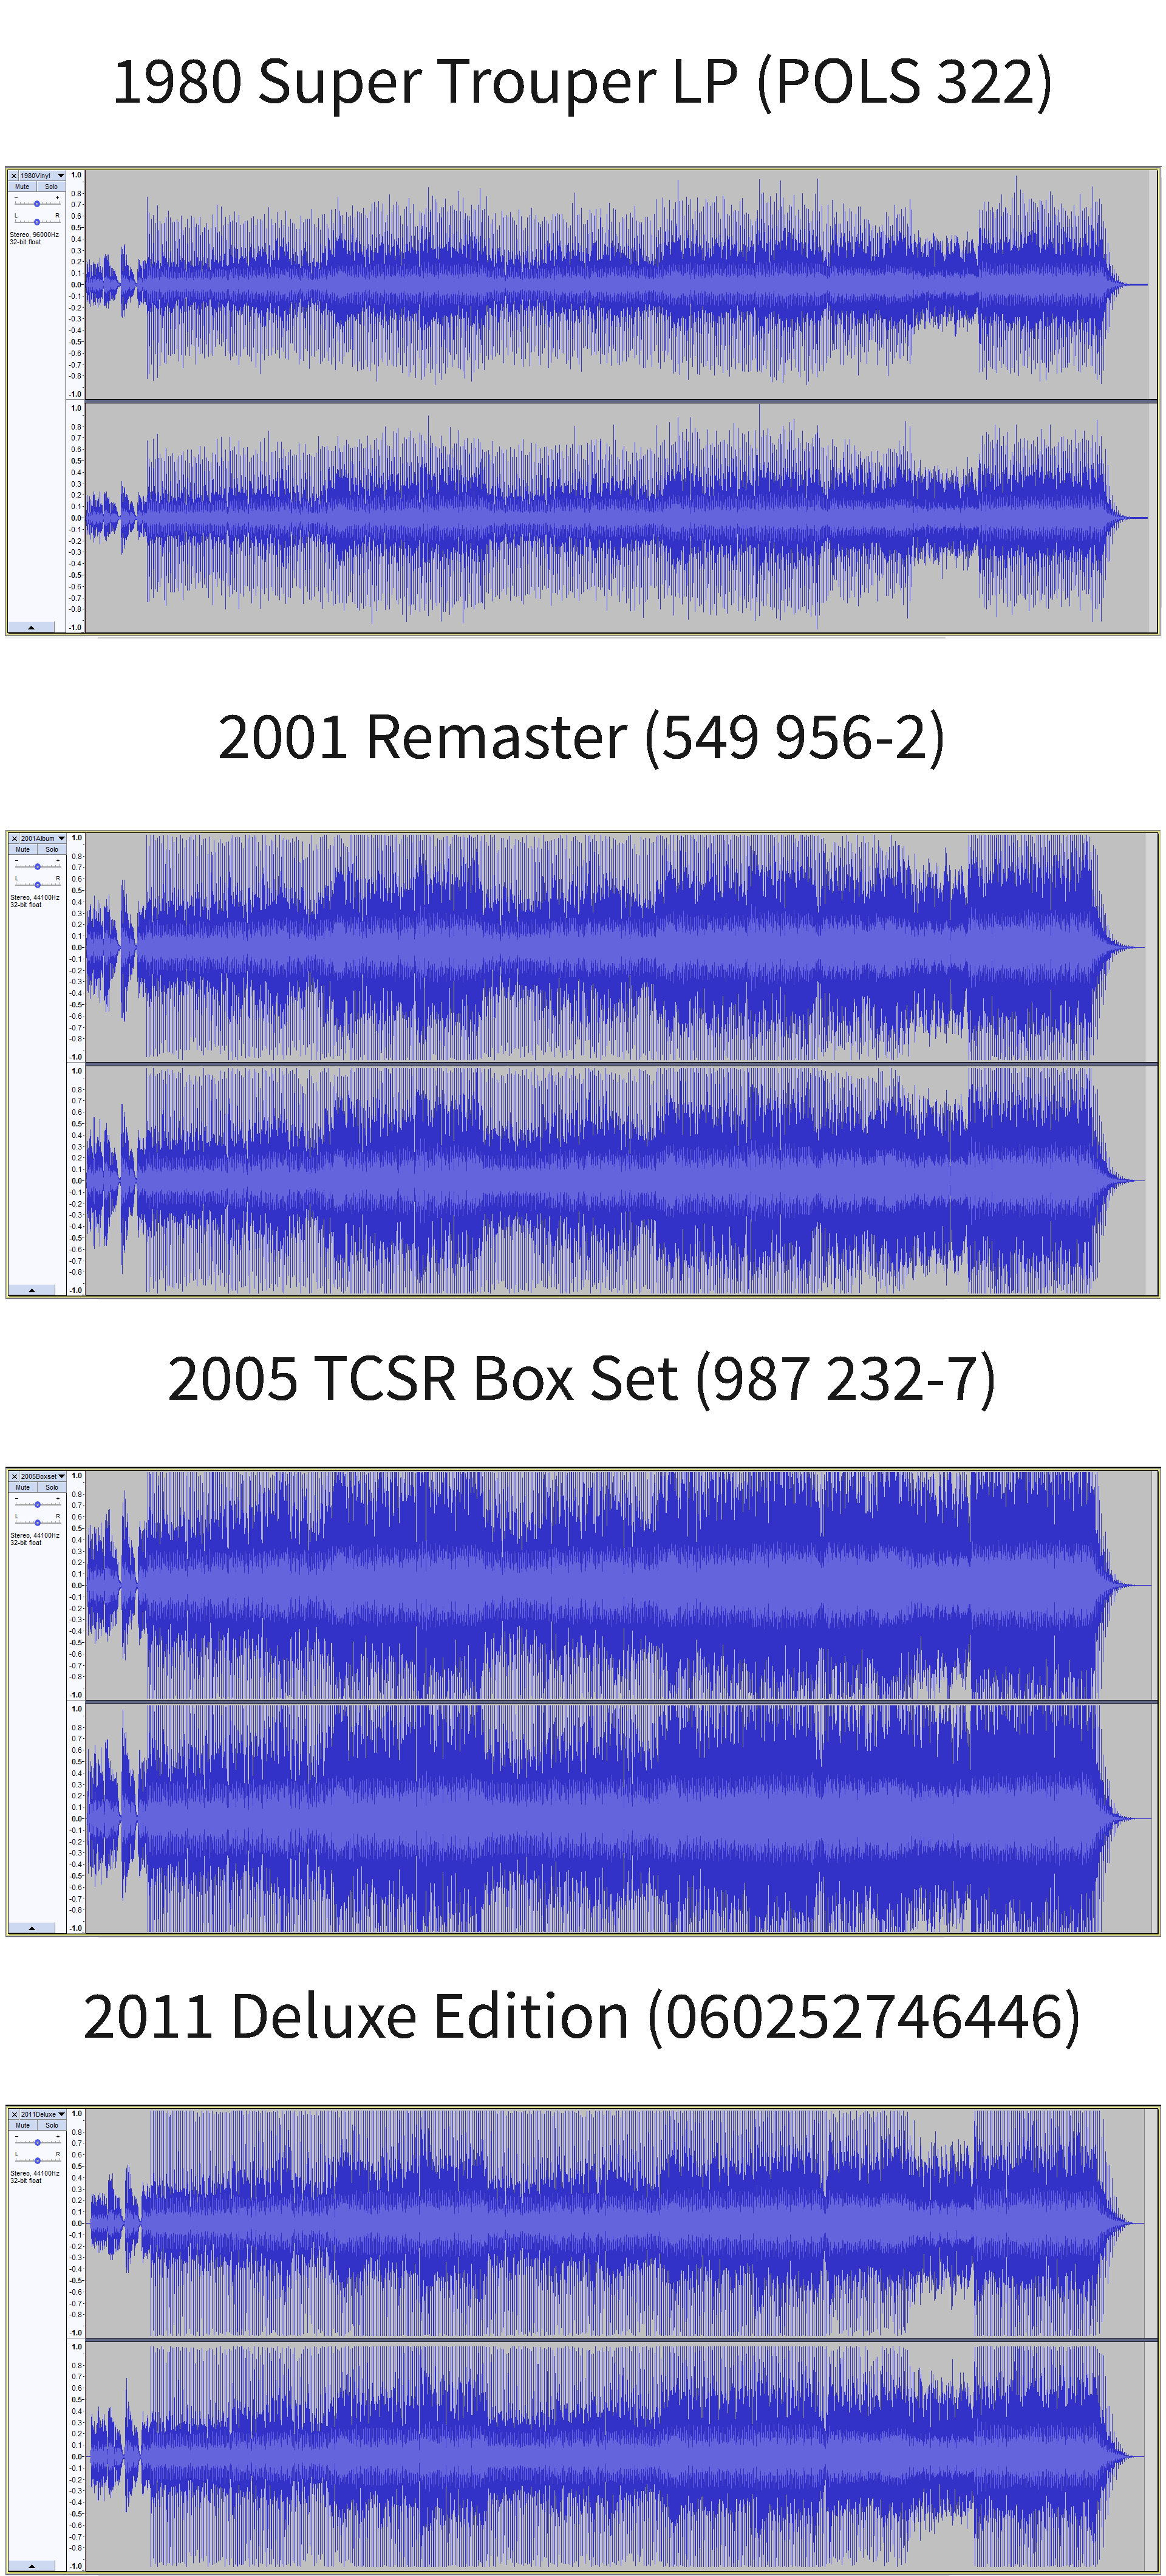 Radio Helsinki 8 129 Photos 97 Reviews Company Pikku Loudness War Wikipedia